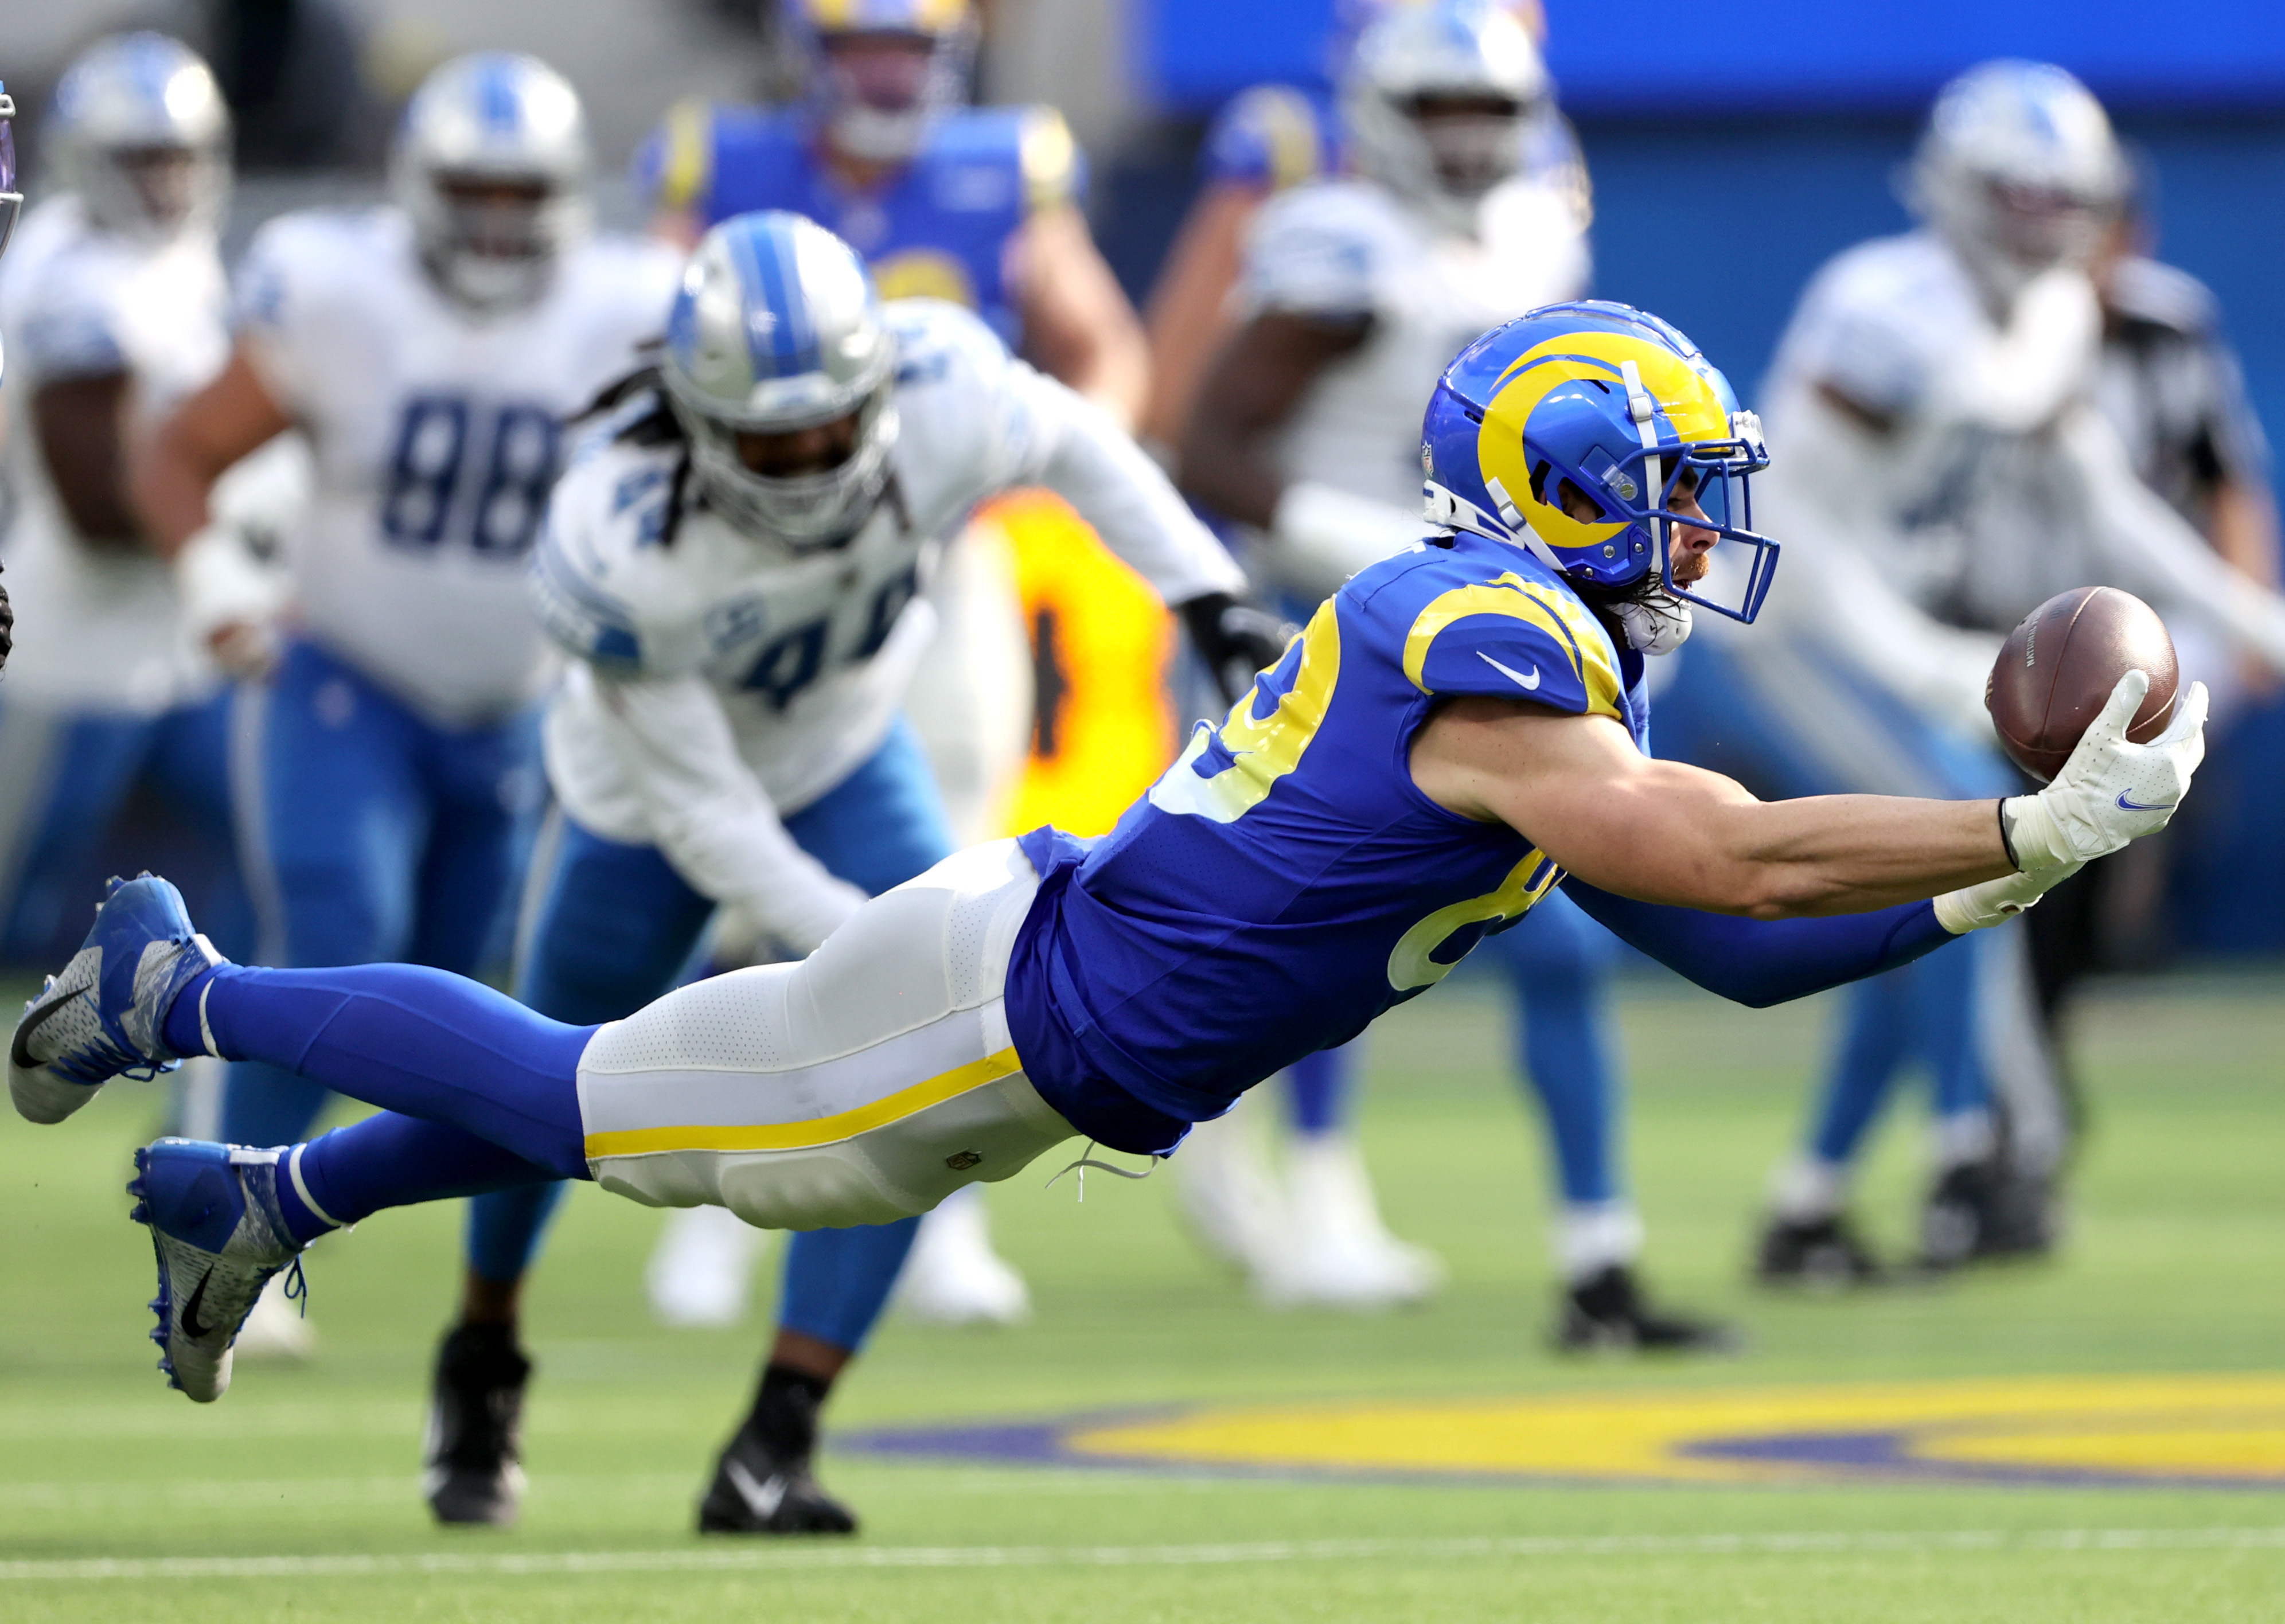 Tyler Higbee #89 of the Los Angeles Rams catches the ball during the second half in the game against the Detroit Lions at SoFi Stadium on October 24, 2021 in Inglewood, California.